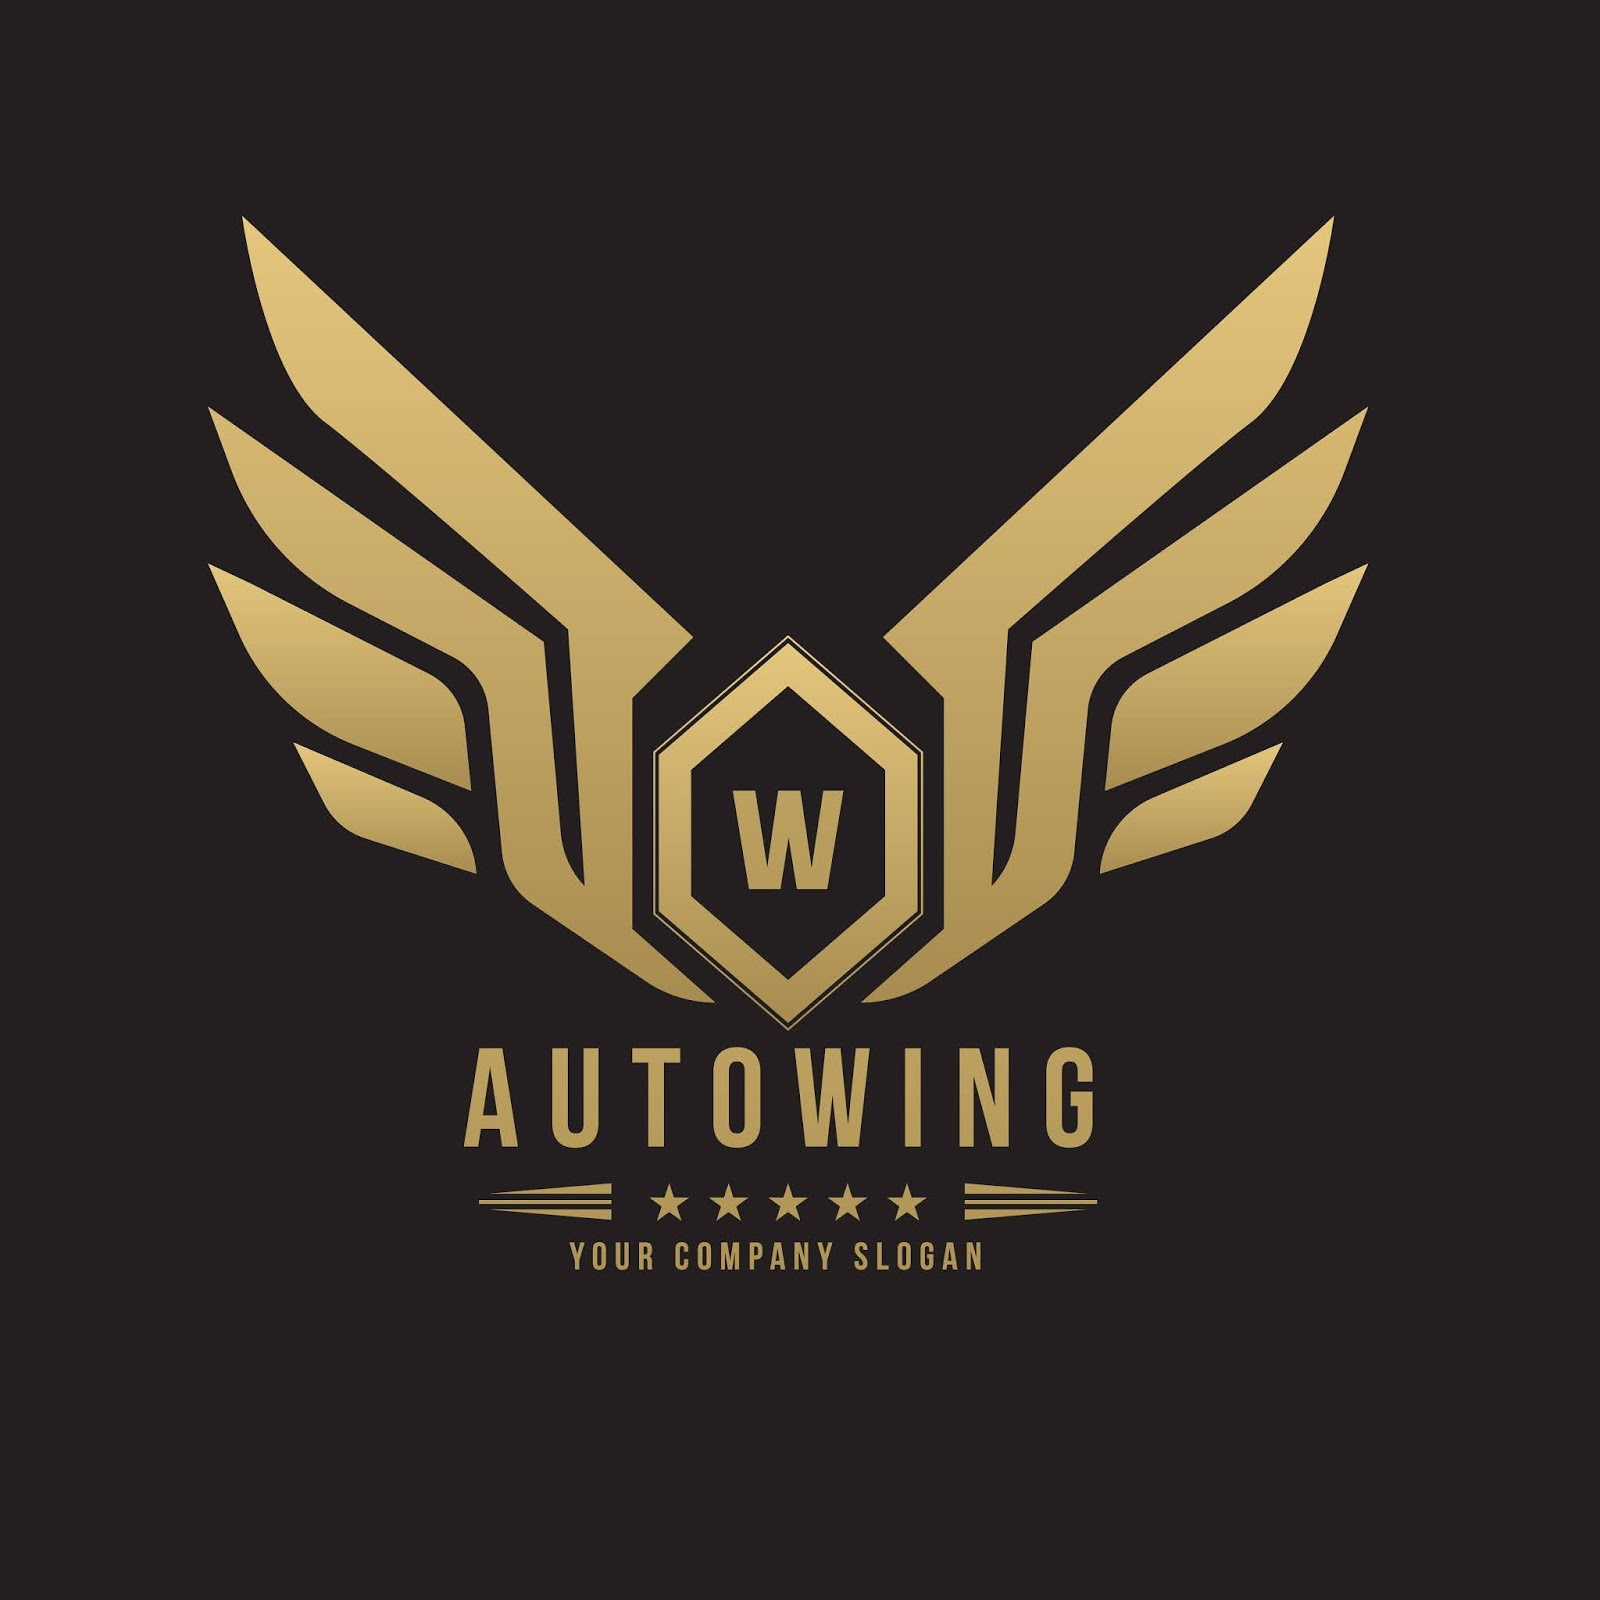 Car Automotive Logo With Eagle Wing Symbol Logo Template Free Download Vector CDR, AI, EPS and PNG Formats